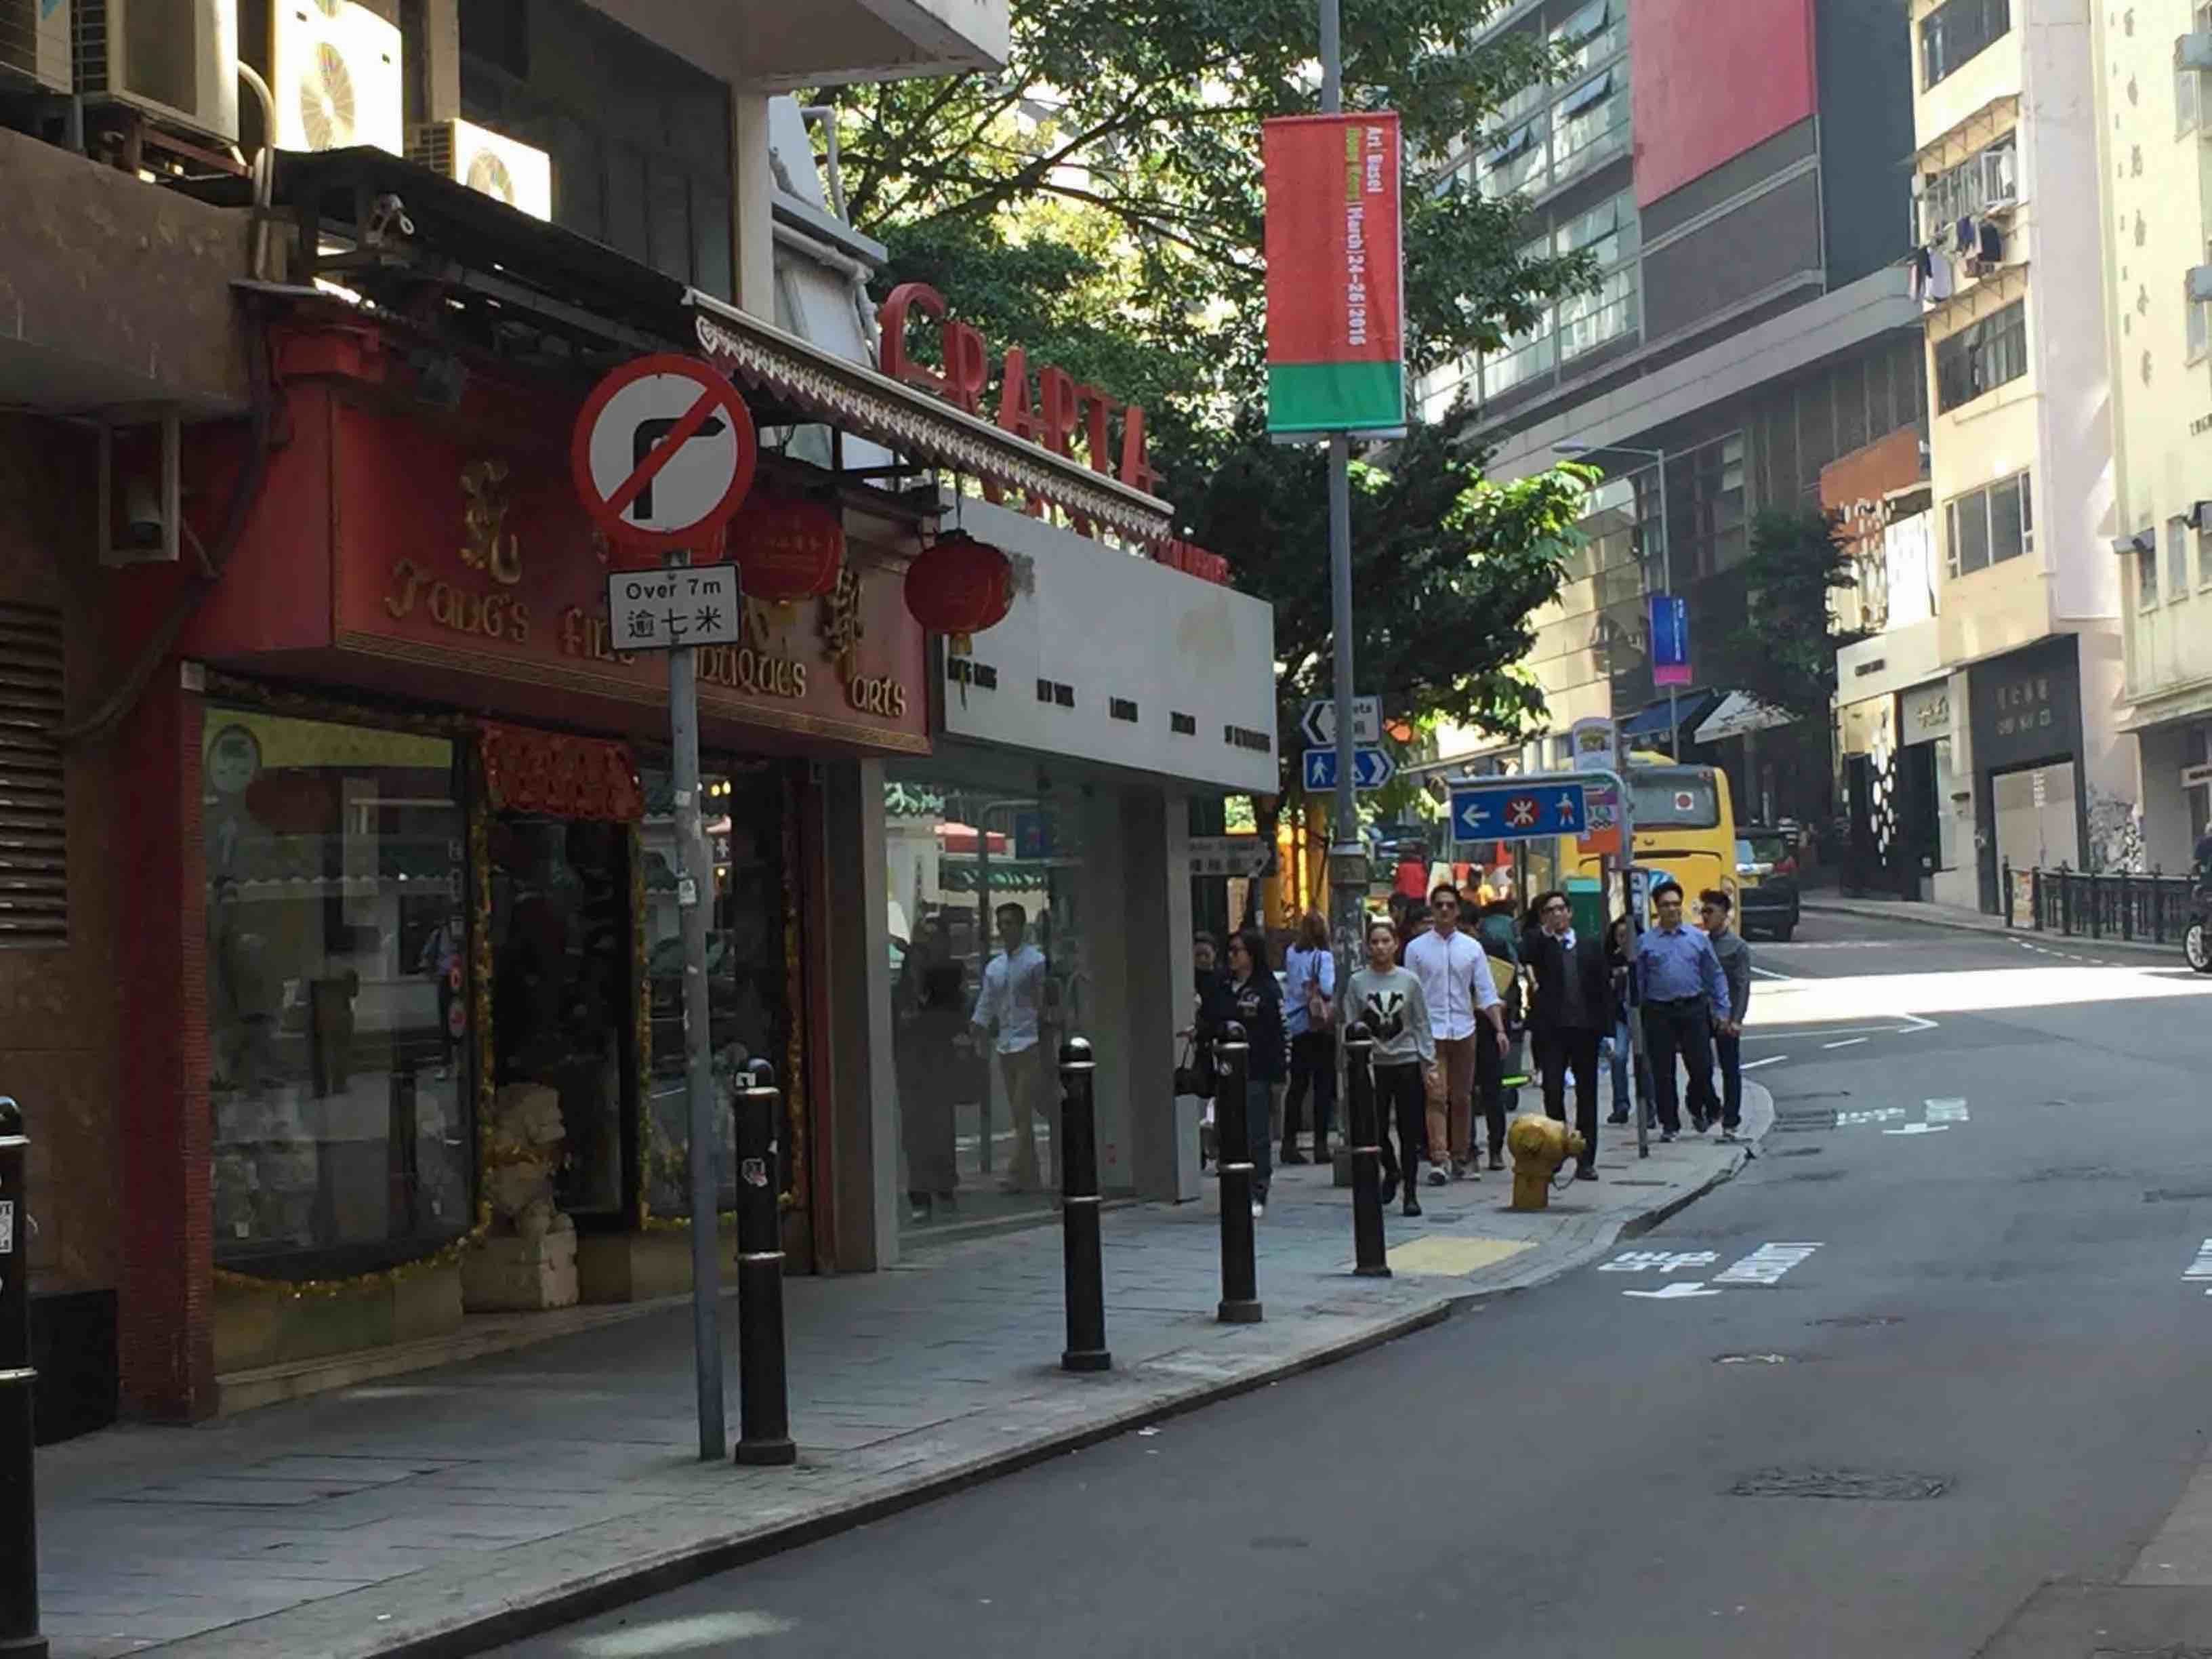 Hollywood Road - galleries & antique shops